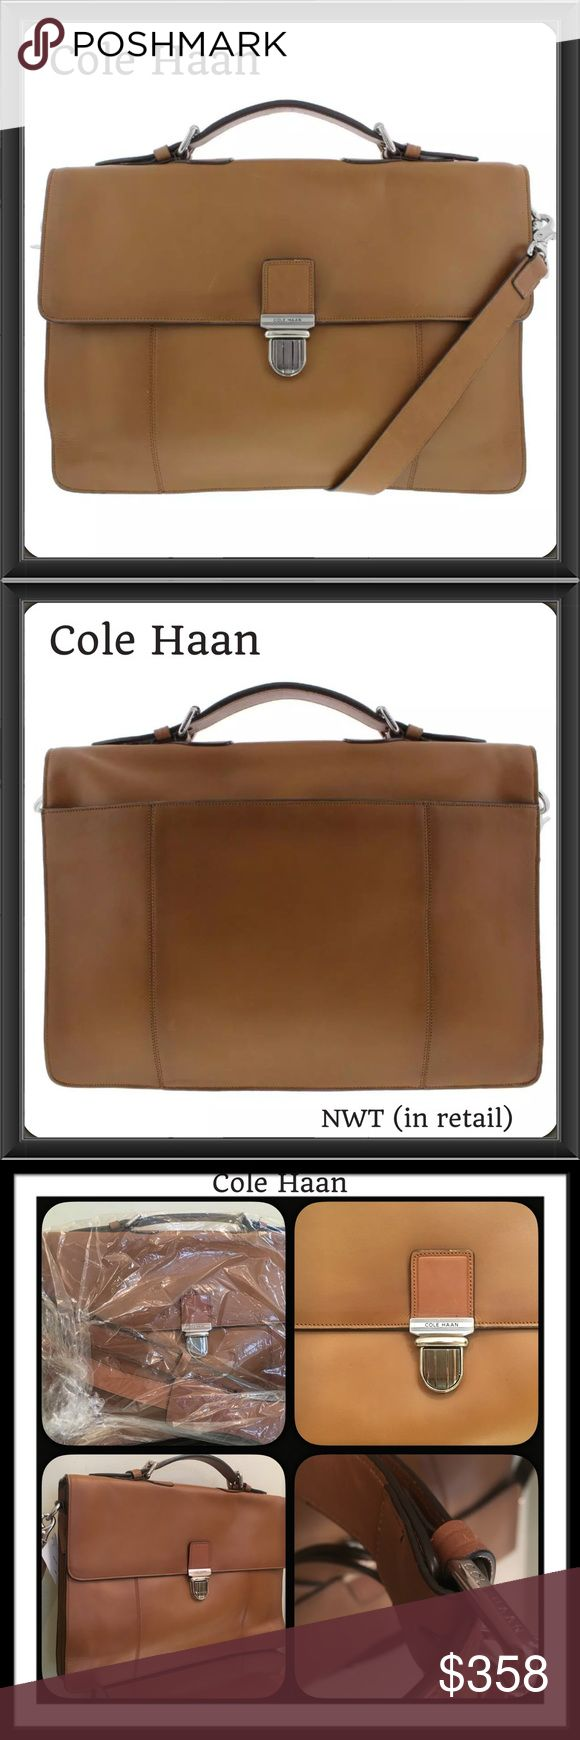 """TAN Leather Cole Haan uni-Sex Messenger BAG Cole Haan Brown Leather Large Messenger Bag (can easily be uni-sex)  Brown/Tan ALL leather!  Retail: $630.00 New w/ partial Tag (came like this) in retail packaging. Messenger w/ Cross Body optional detachable carry. Top handle also! Convertible Carry! Duel functionality! Organizational compartments  Push Lock closure!  Bag Height 10.5"""" Bag Width 15"""" Bag Depth 3 3/4"""" (expandable accordion-like bottom) Handle drop: 3"""" (both adjustable) X-body strap…"""